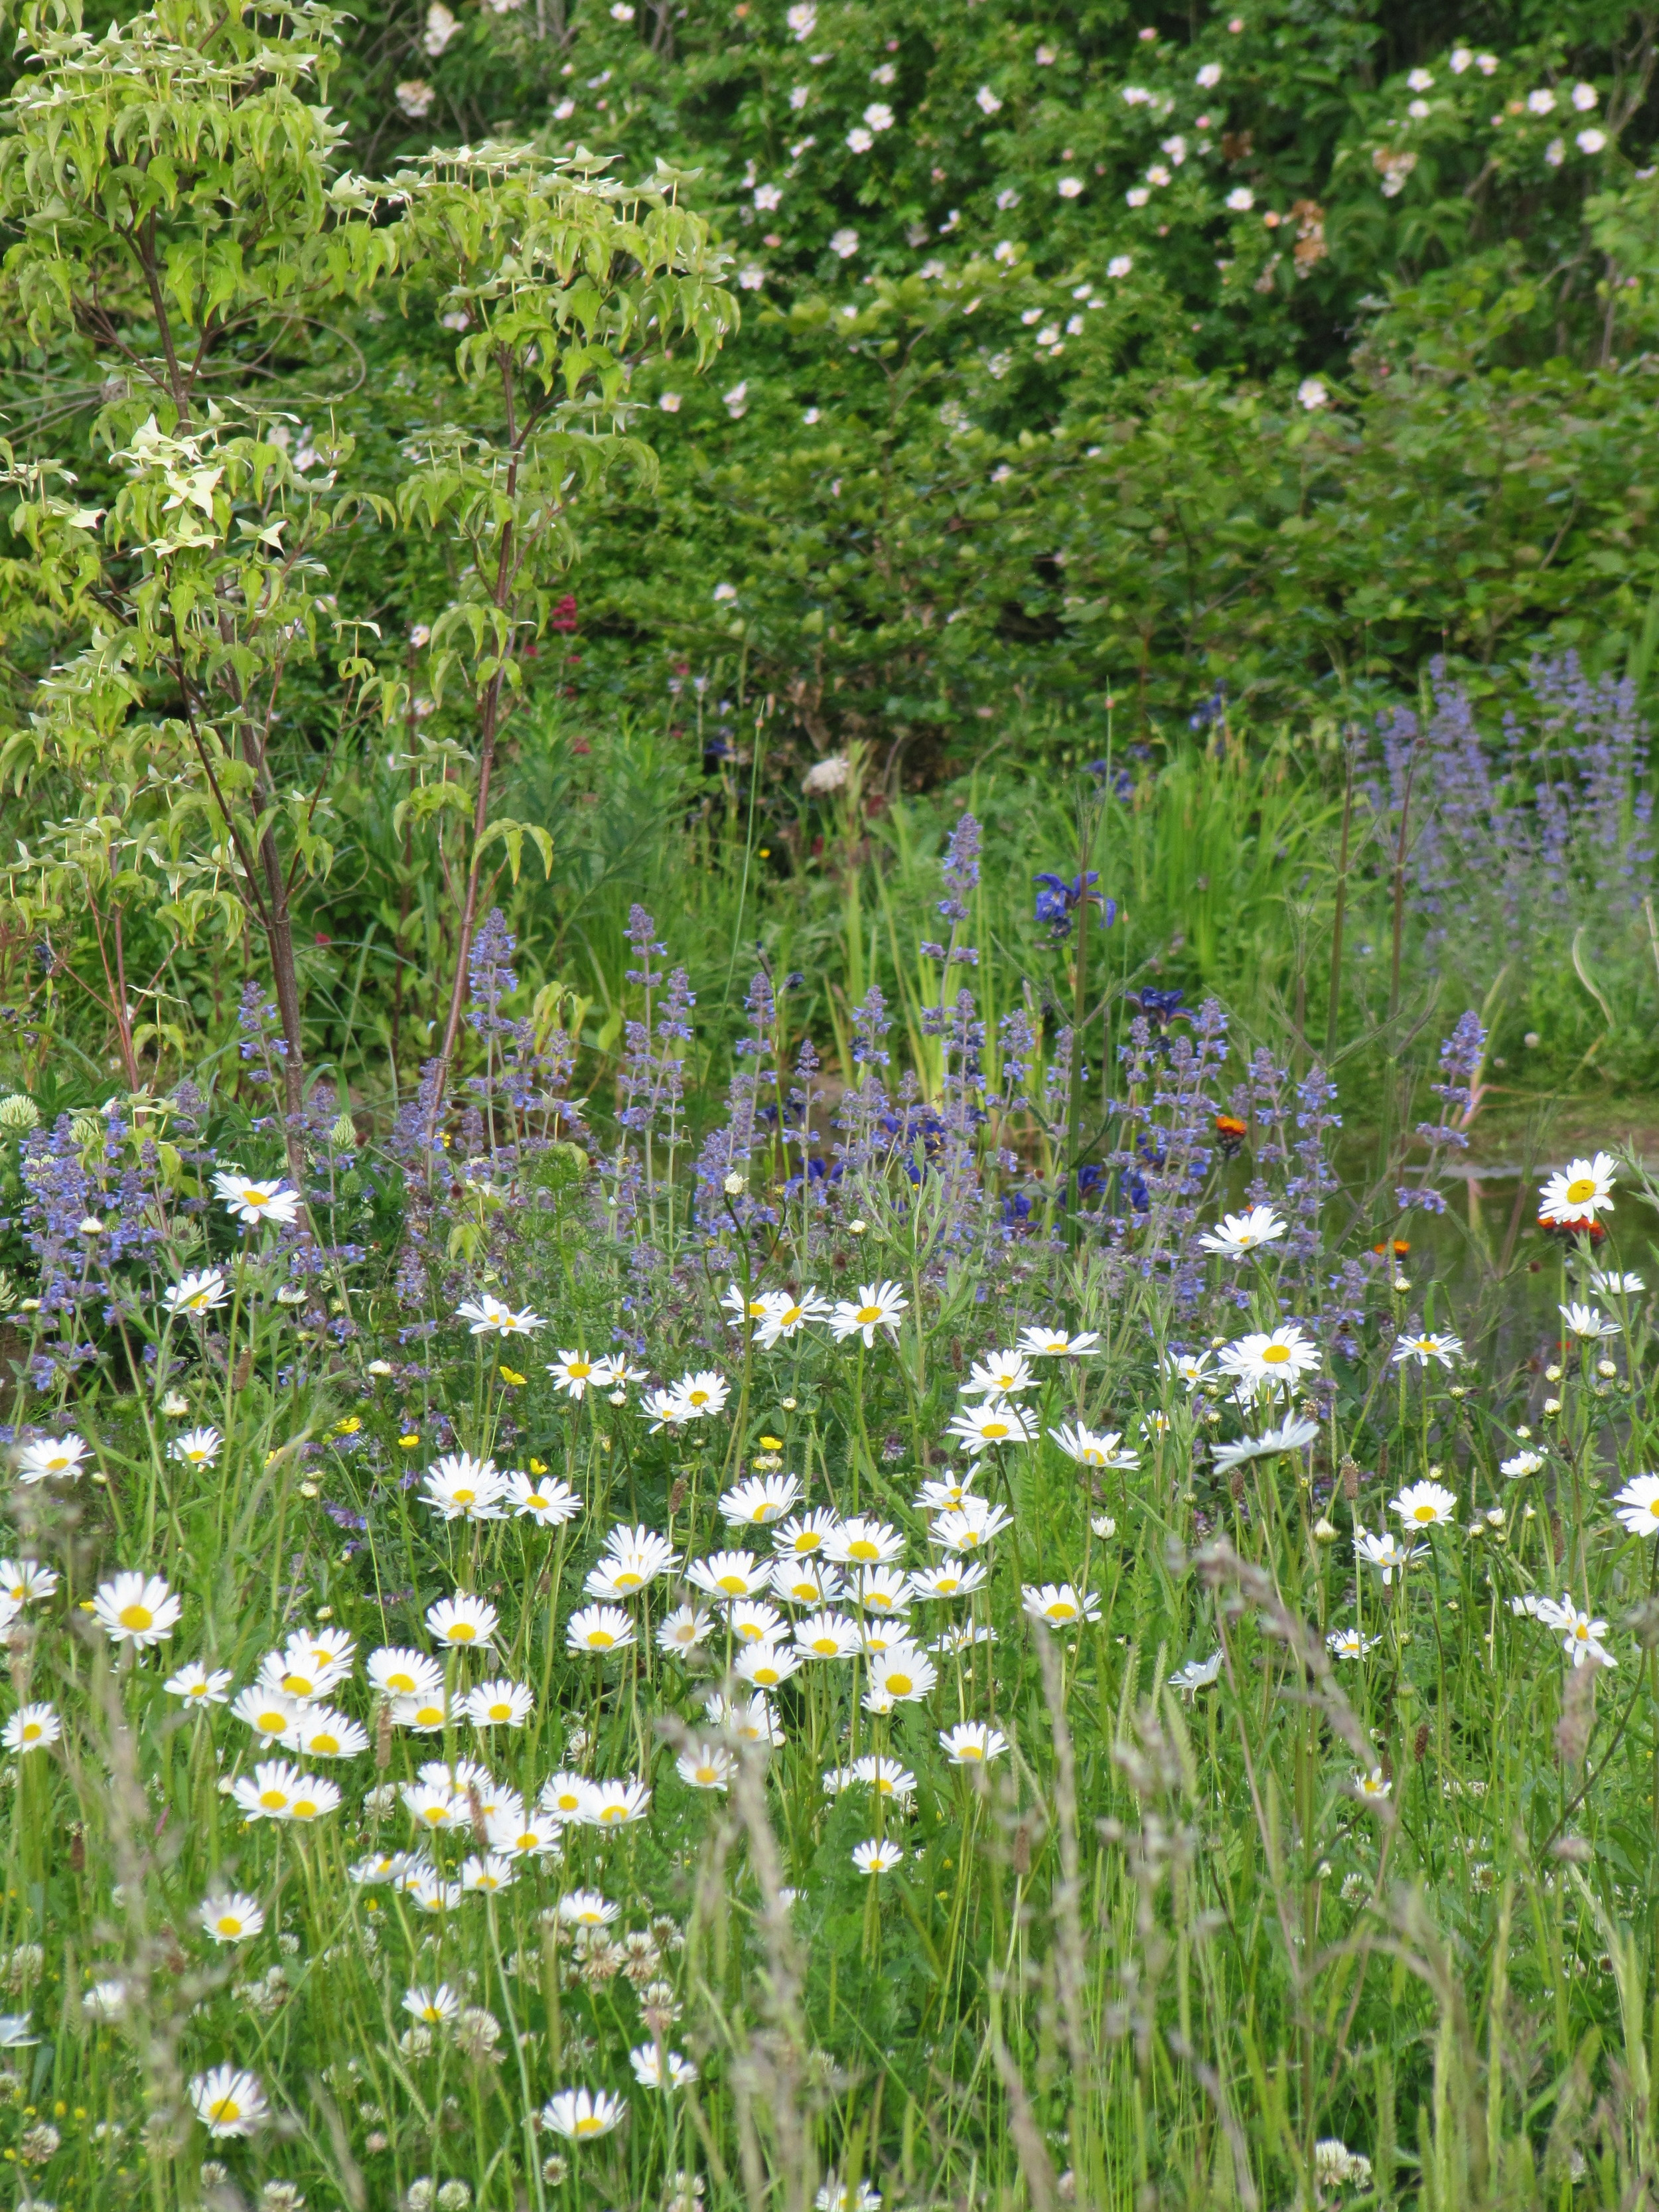 Dog daisies, Leucanthemum vulgare  and catmint, Nepeta 'Six Hills' Giant'.